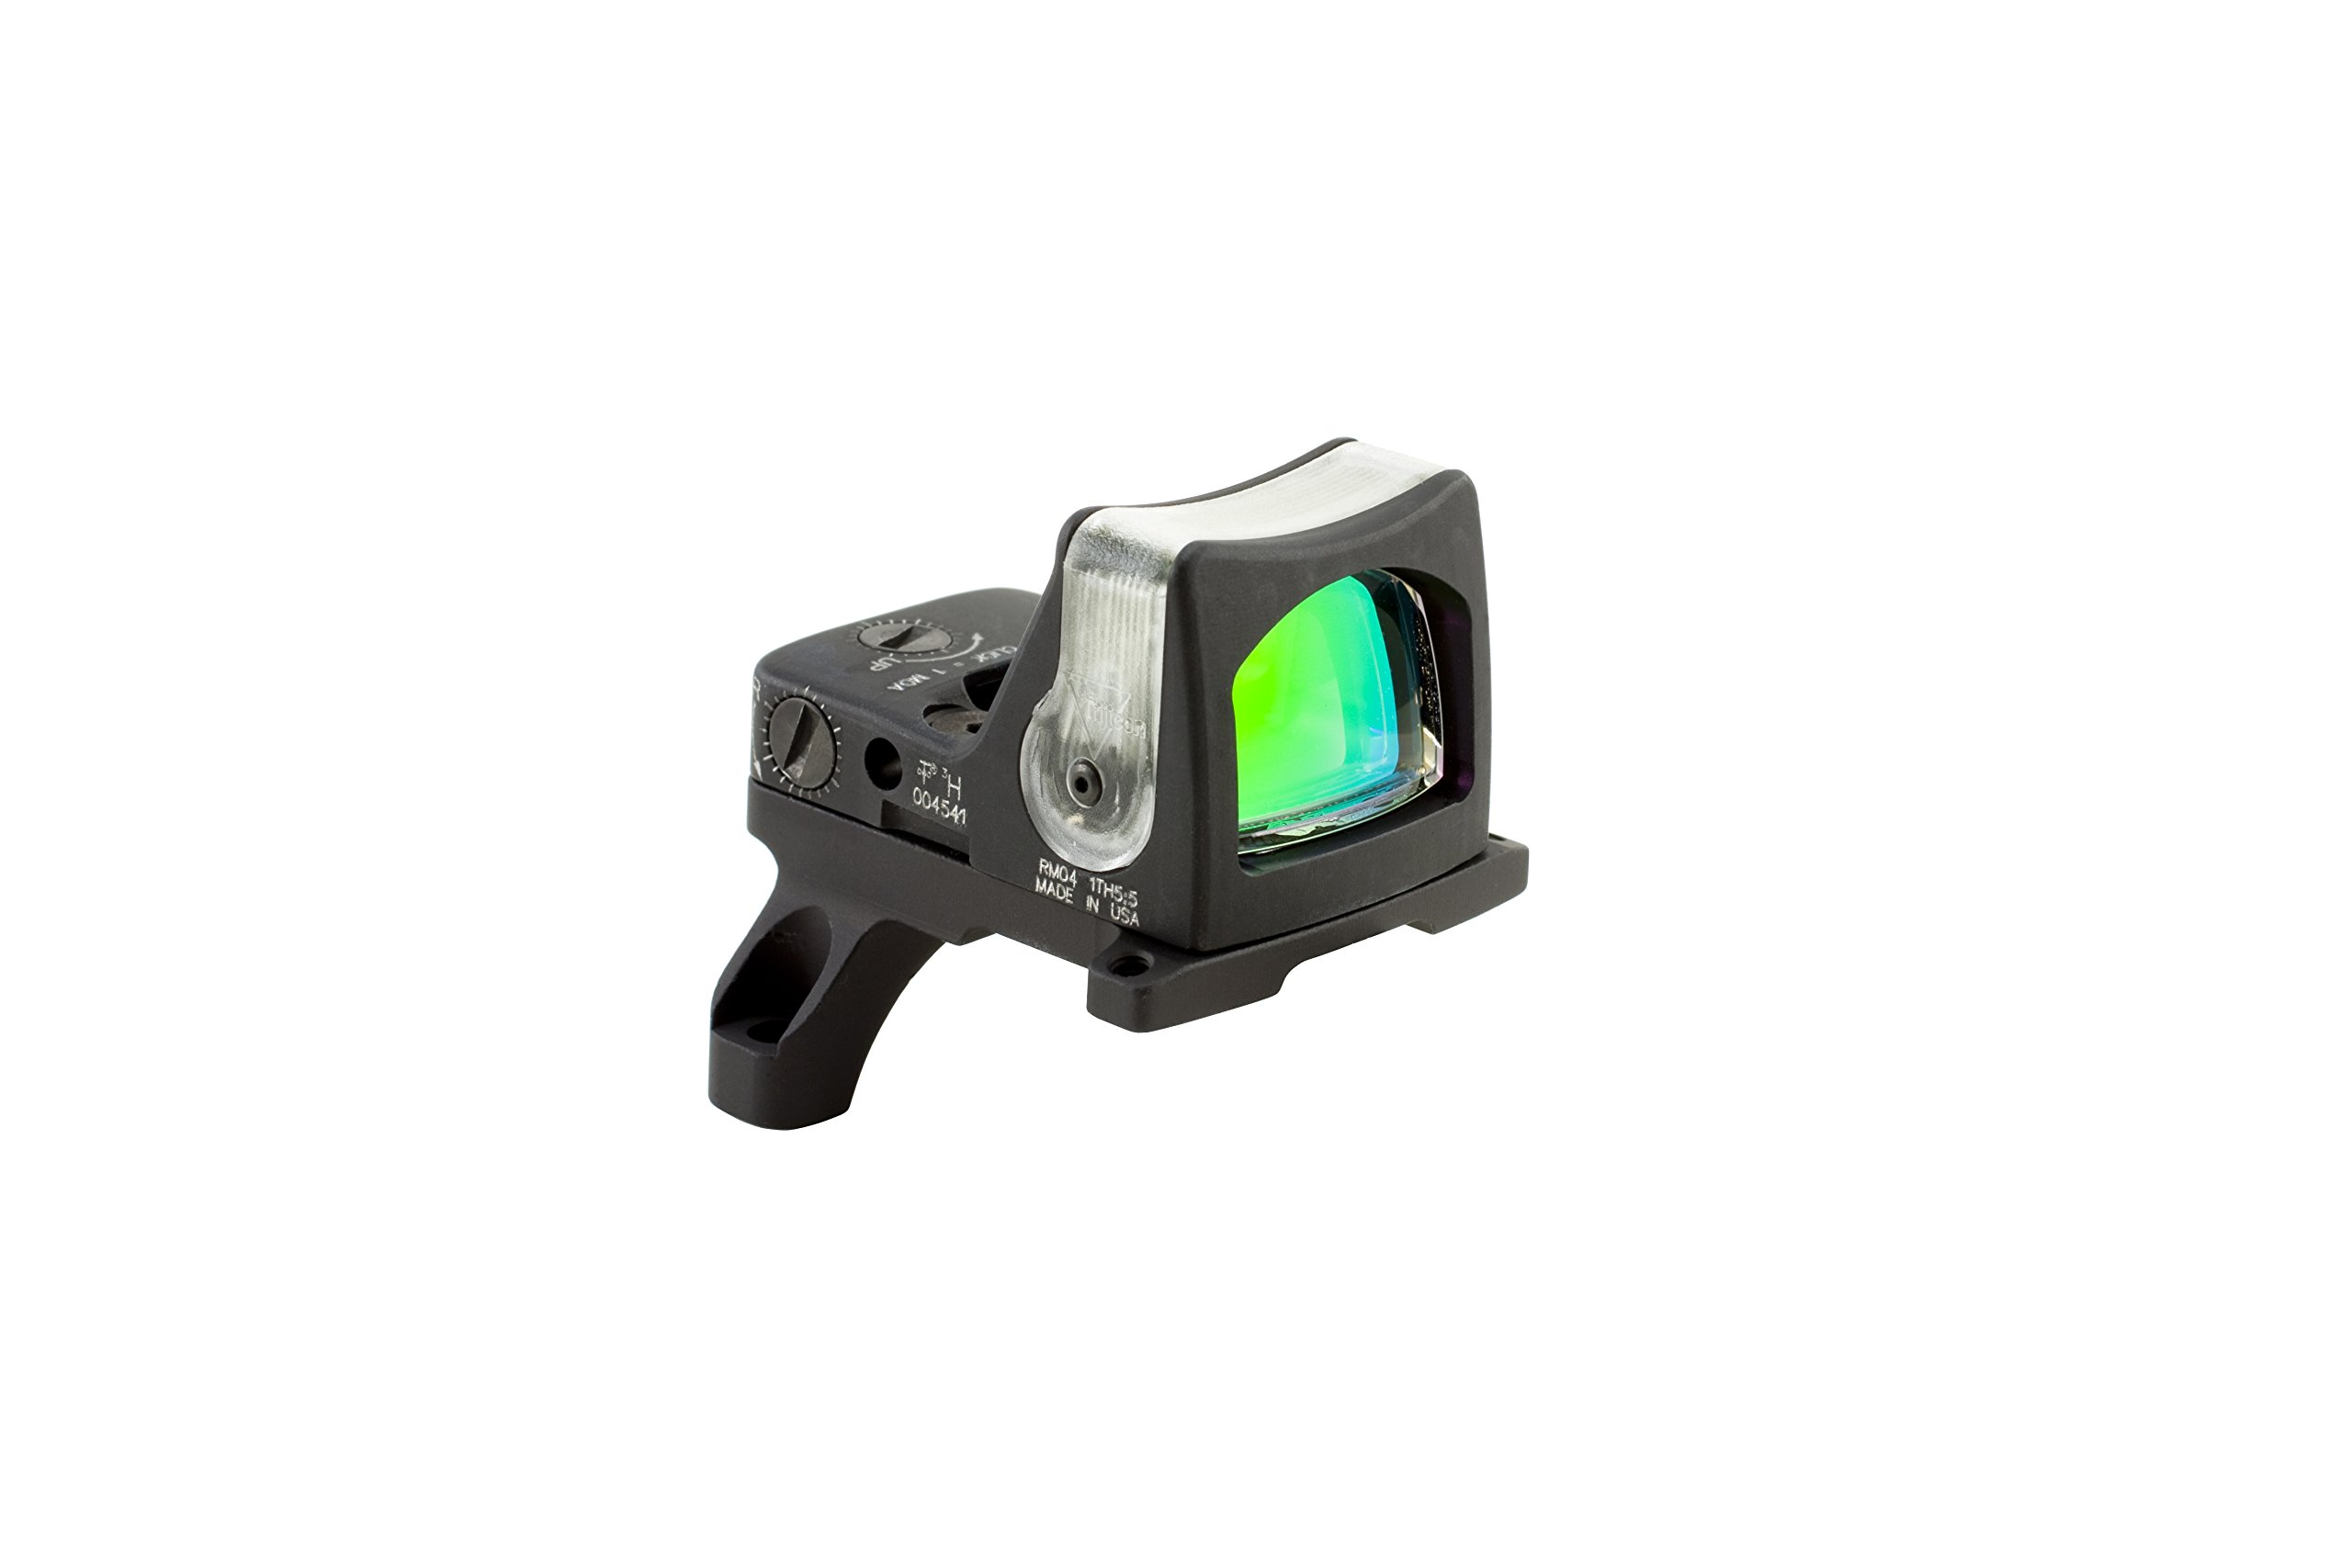 Trijicon RM04-35 RMR 7 MOA Dual-Illuminated Amber Dot Sight with RM35 Full Size ACOG Mount with Bosses by Trijicon